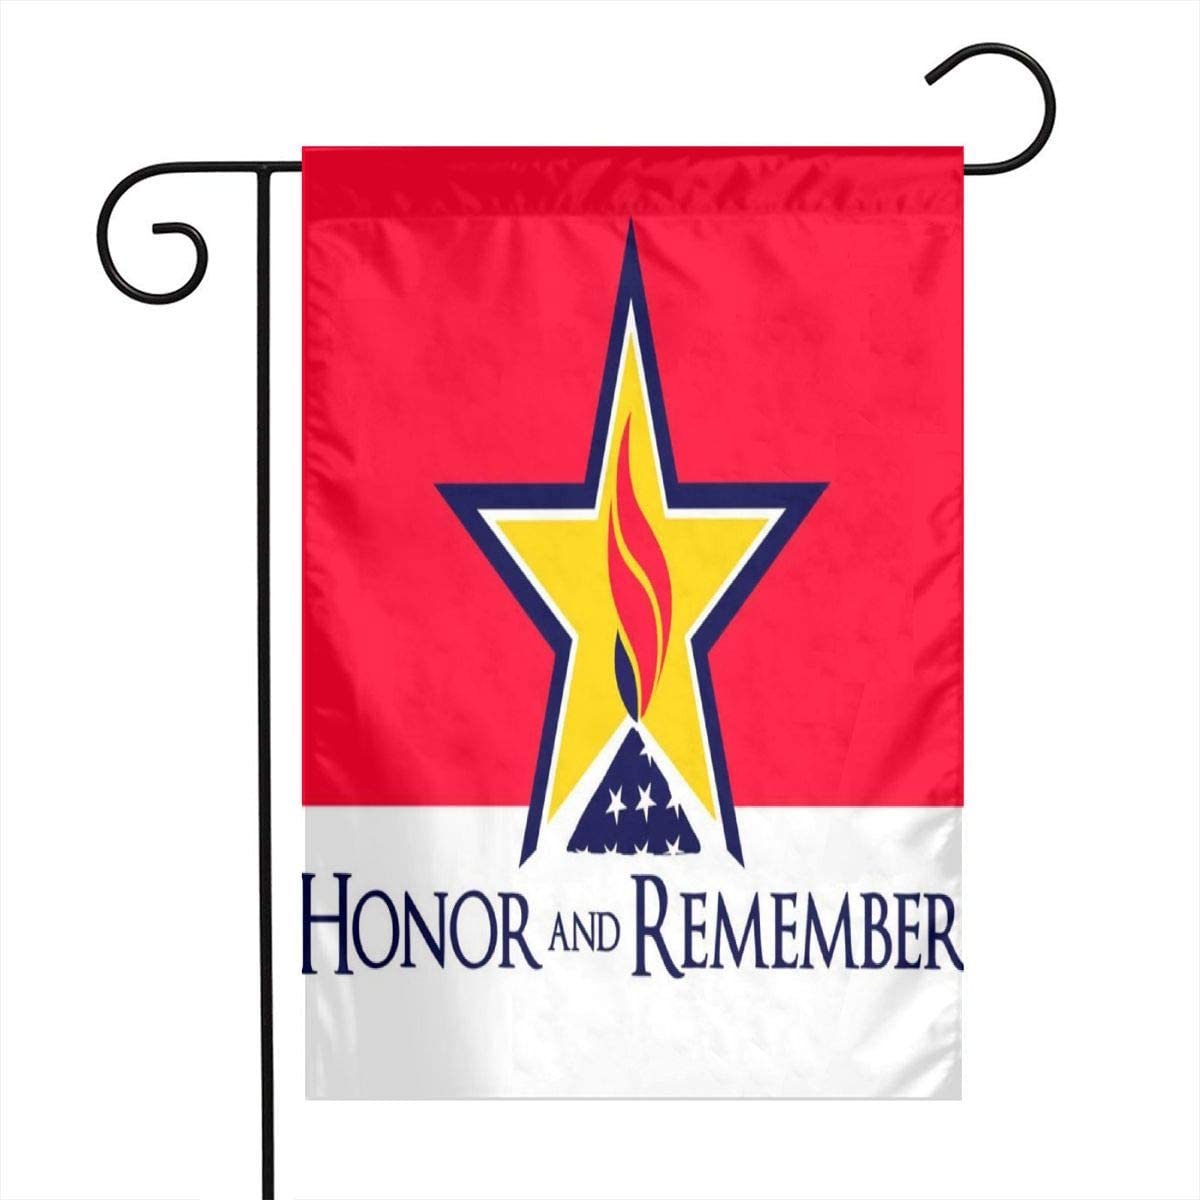 Alin-Z Garden Flag Decoration Honor and Remember Flag Banner Decorative Sweet Home Yard Outdoor Decor 12X18inch